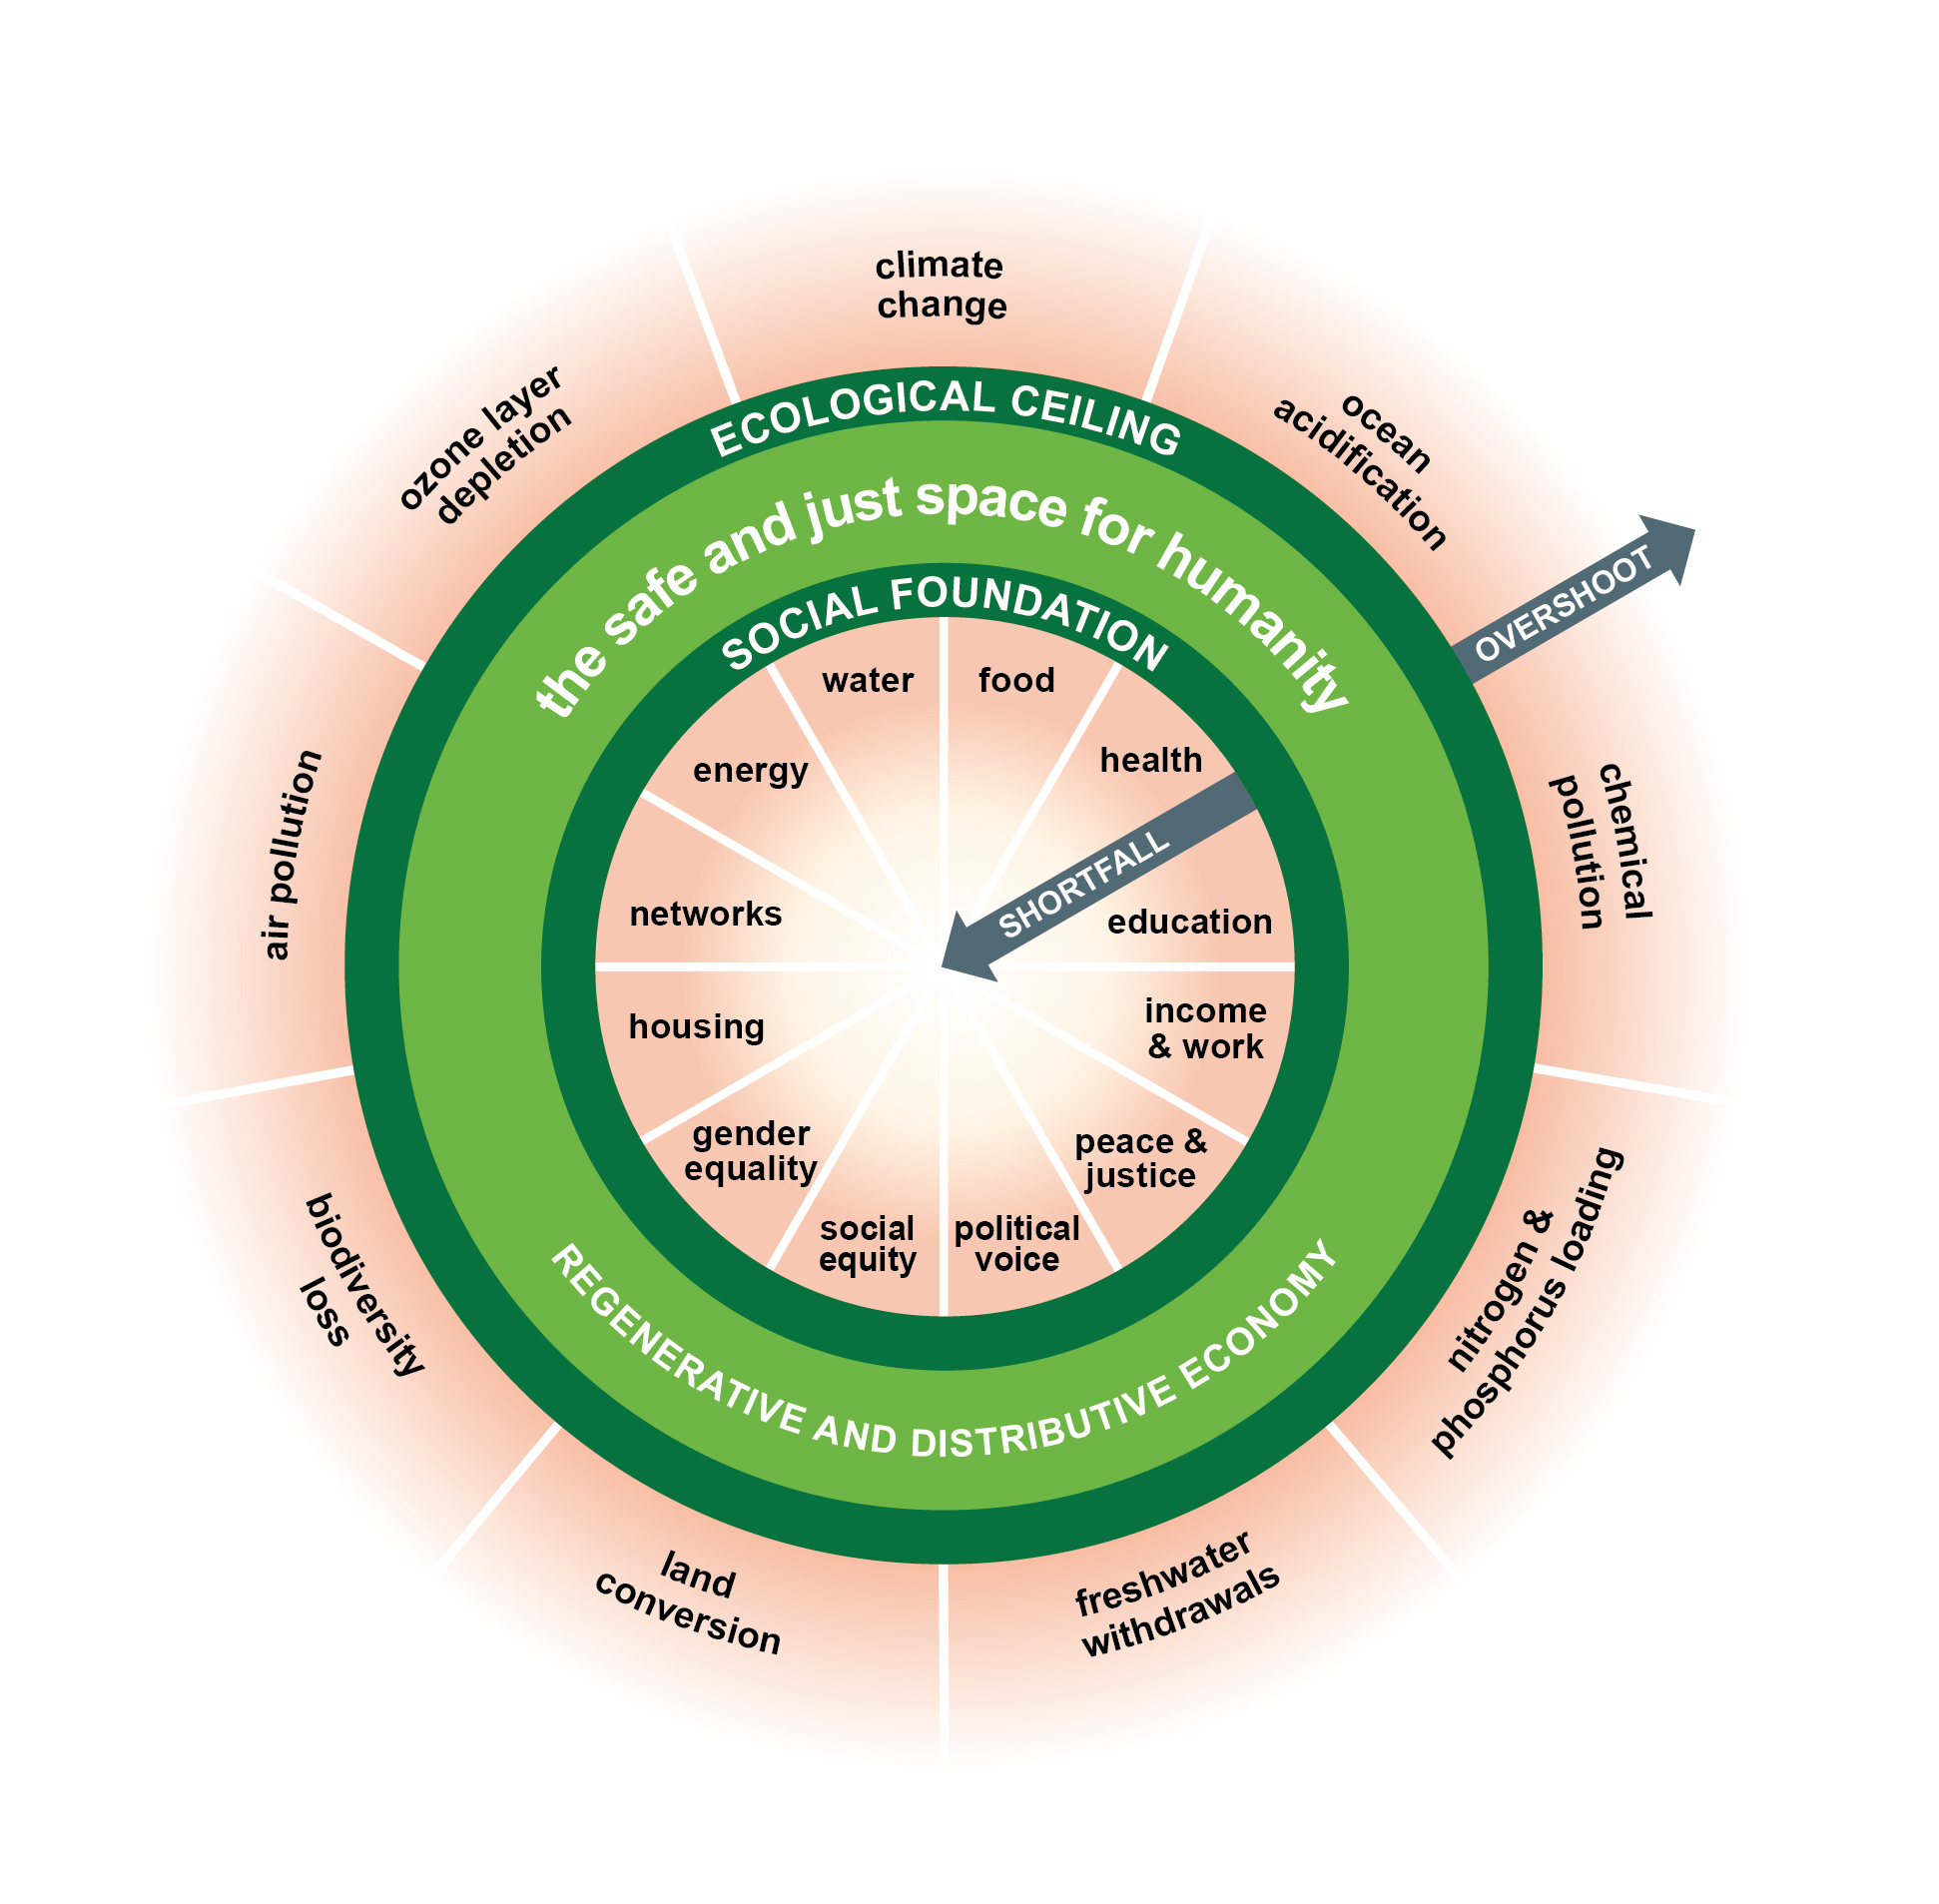 Kate Raworth doughnut model suggest a radical turn in economic theory, now tested in Amsterdam